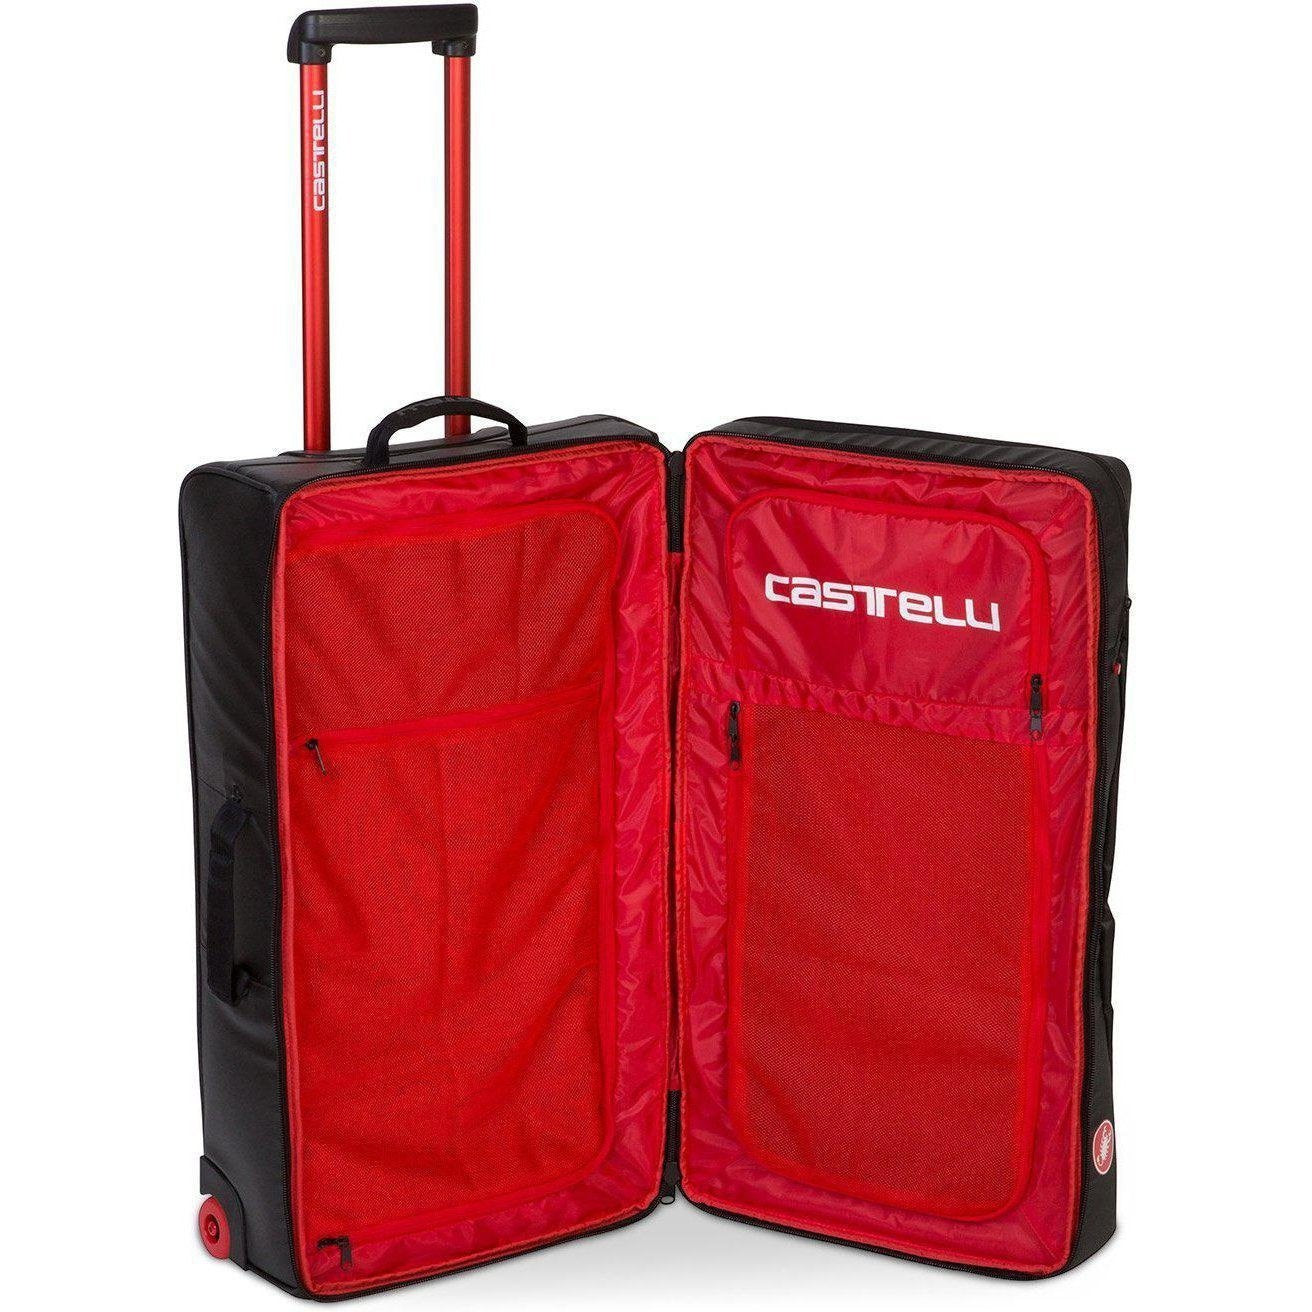 Castelli-Castelli Extra Large Rolling Travel Bag-Black-80L-CS8900101-saddleback-elite-performance-cycling